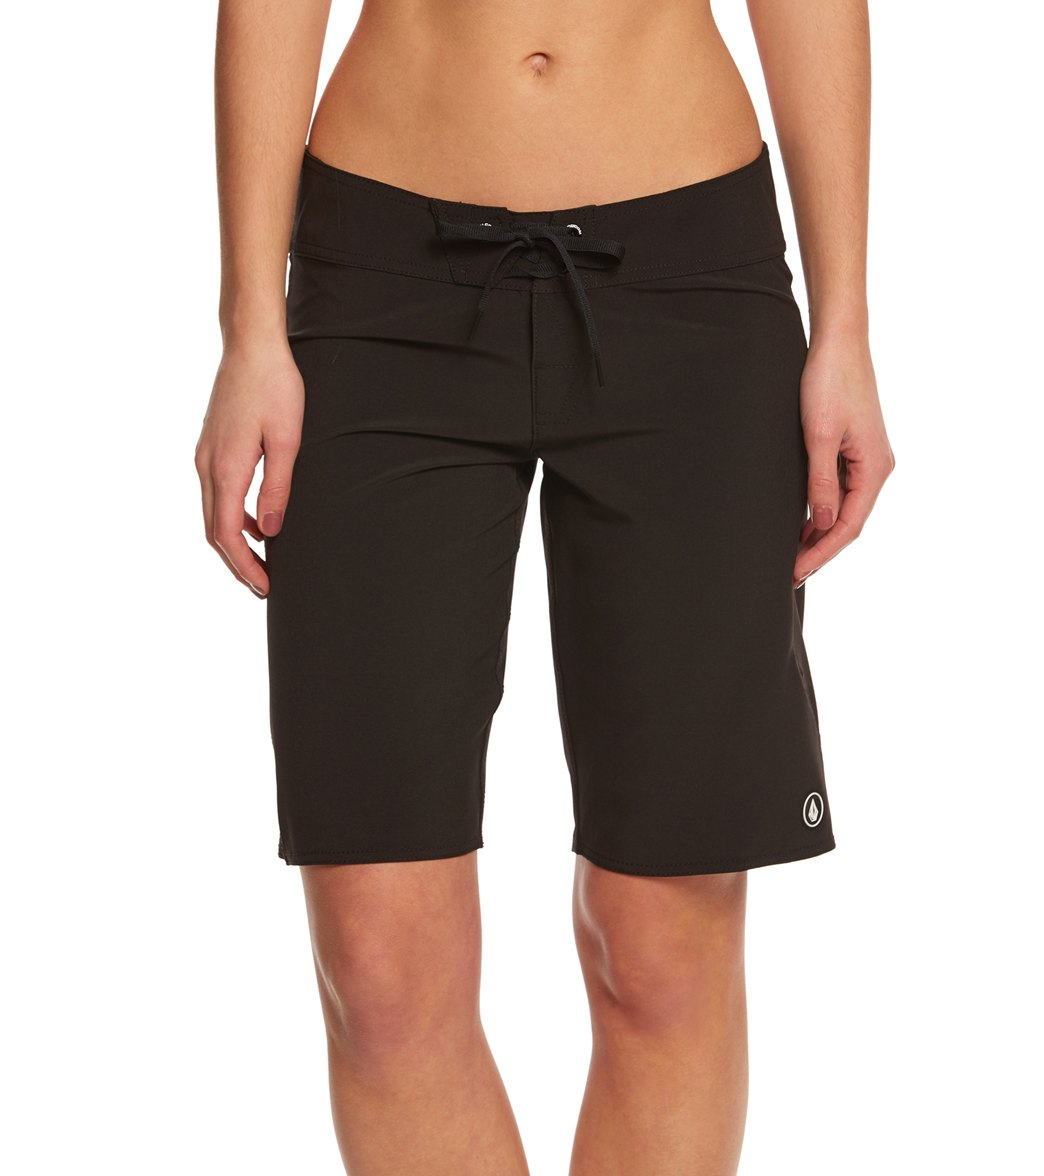 Frickin Lightweight Short - Men's Volcom Find for discount Frickin Lightweight Short - Men's Volcom check price now. on-line searching has currently gone a protracted manner; it's modified the way customers and entrepreneurs do business these days.